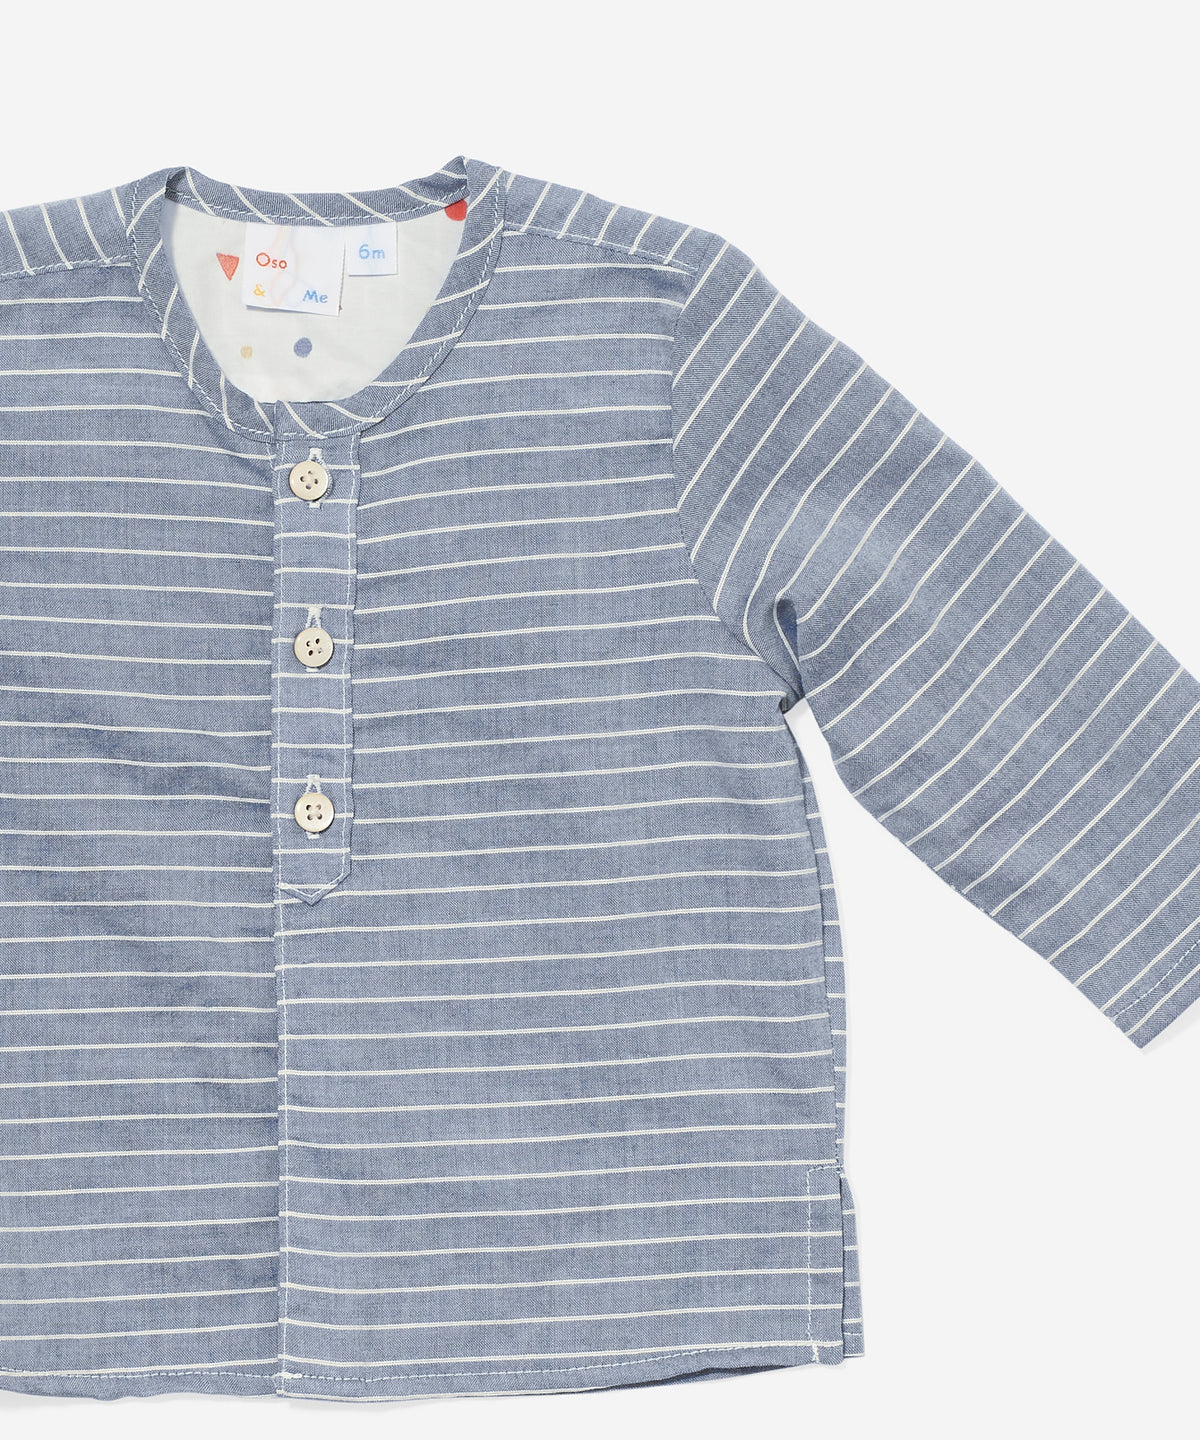 Lupo Baby Shirt, Chambray Stripe